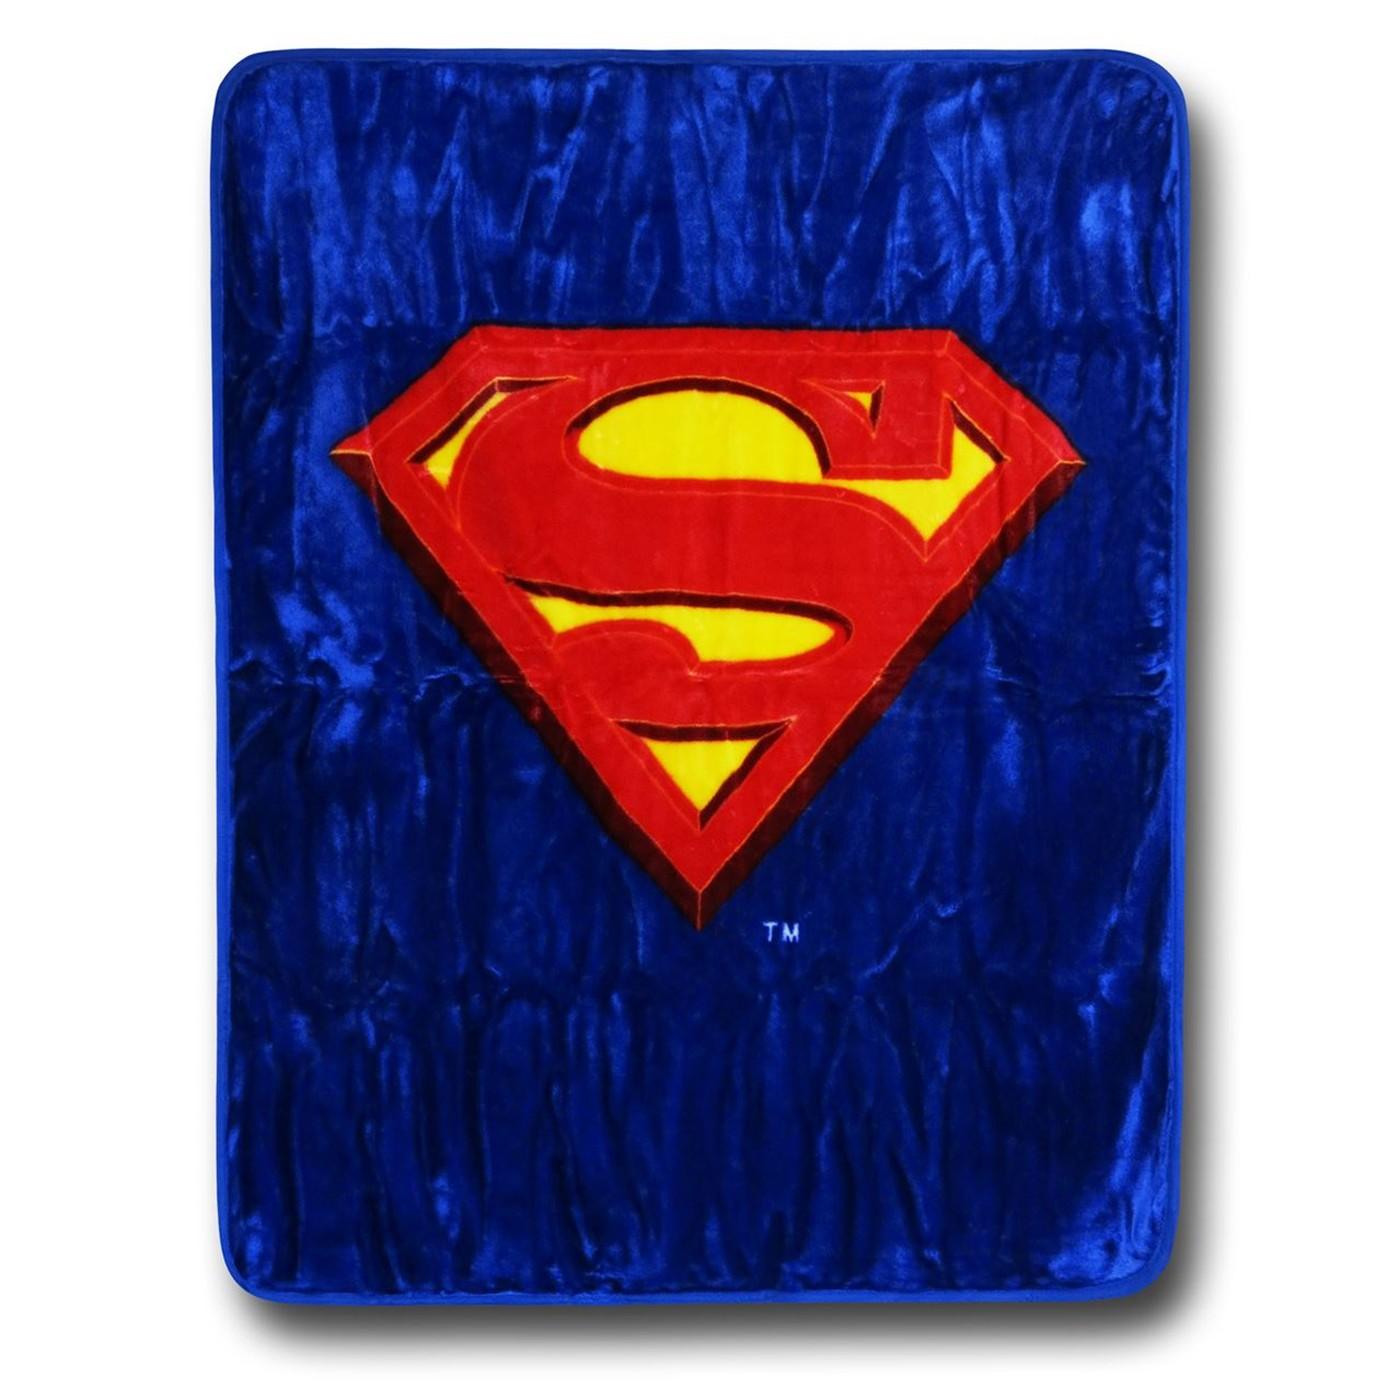 Superman Symbol Luxury Plush Blanket